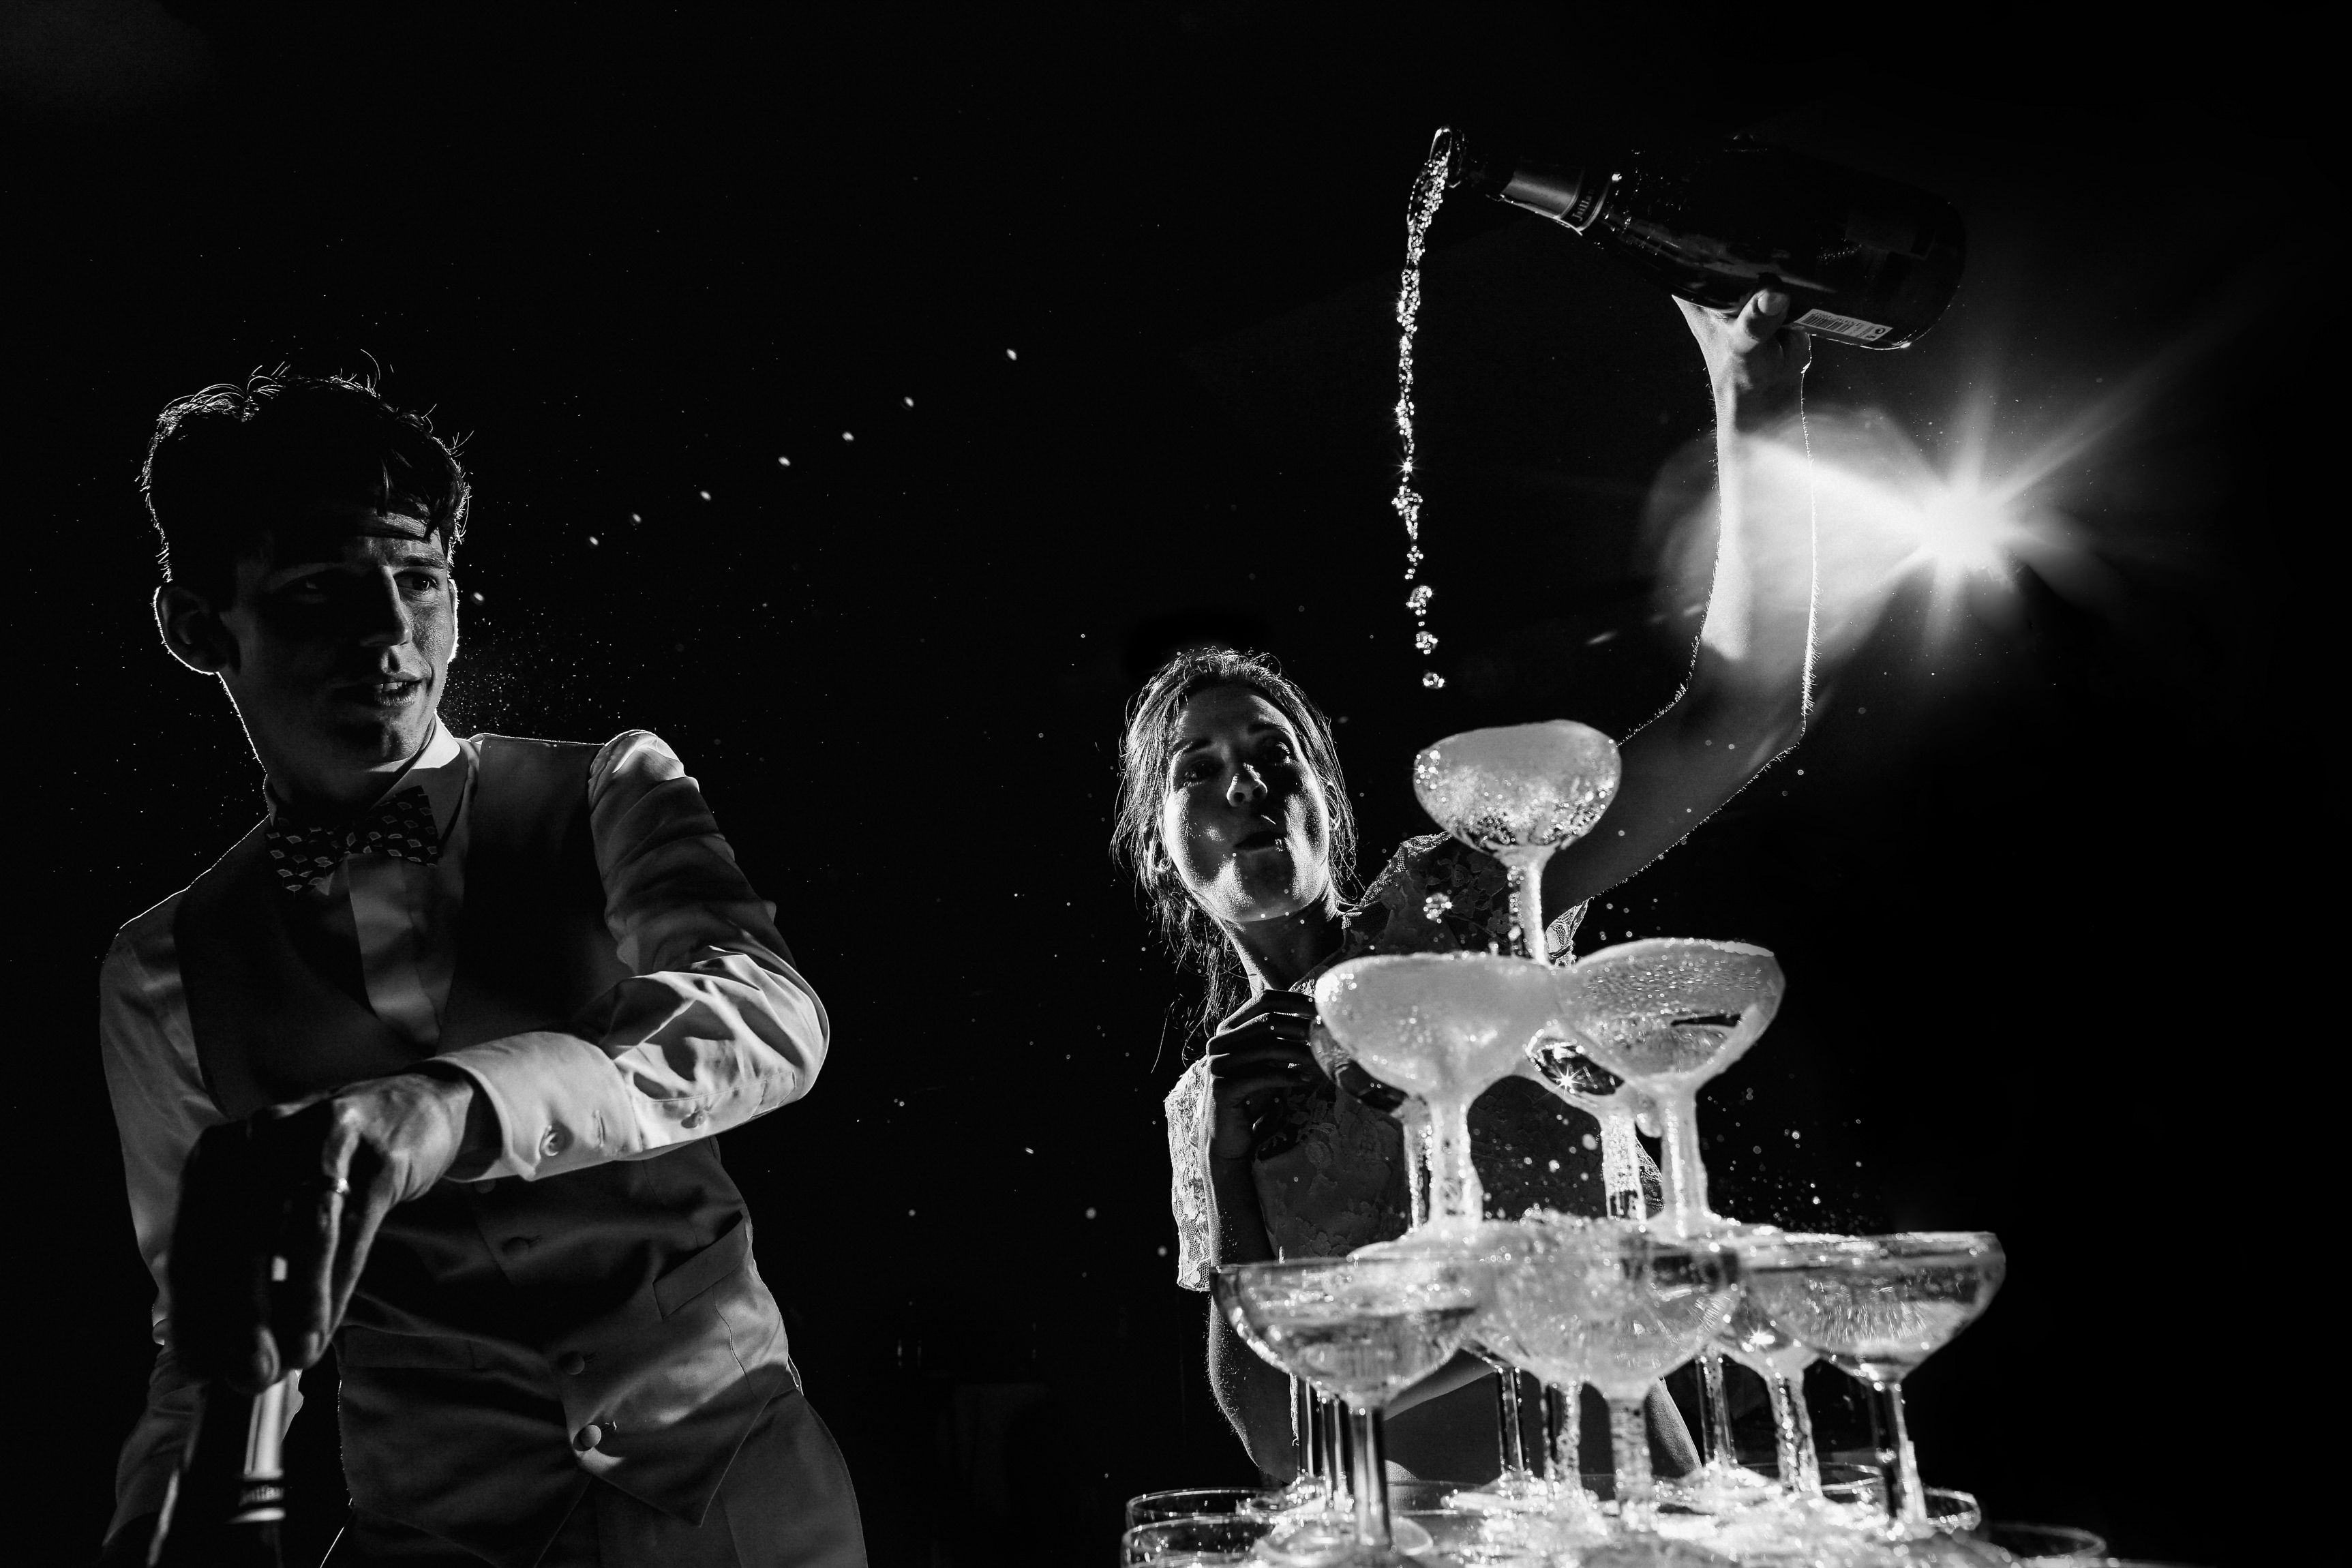 Pouring the bubbly - photo by Amandine Ropars